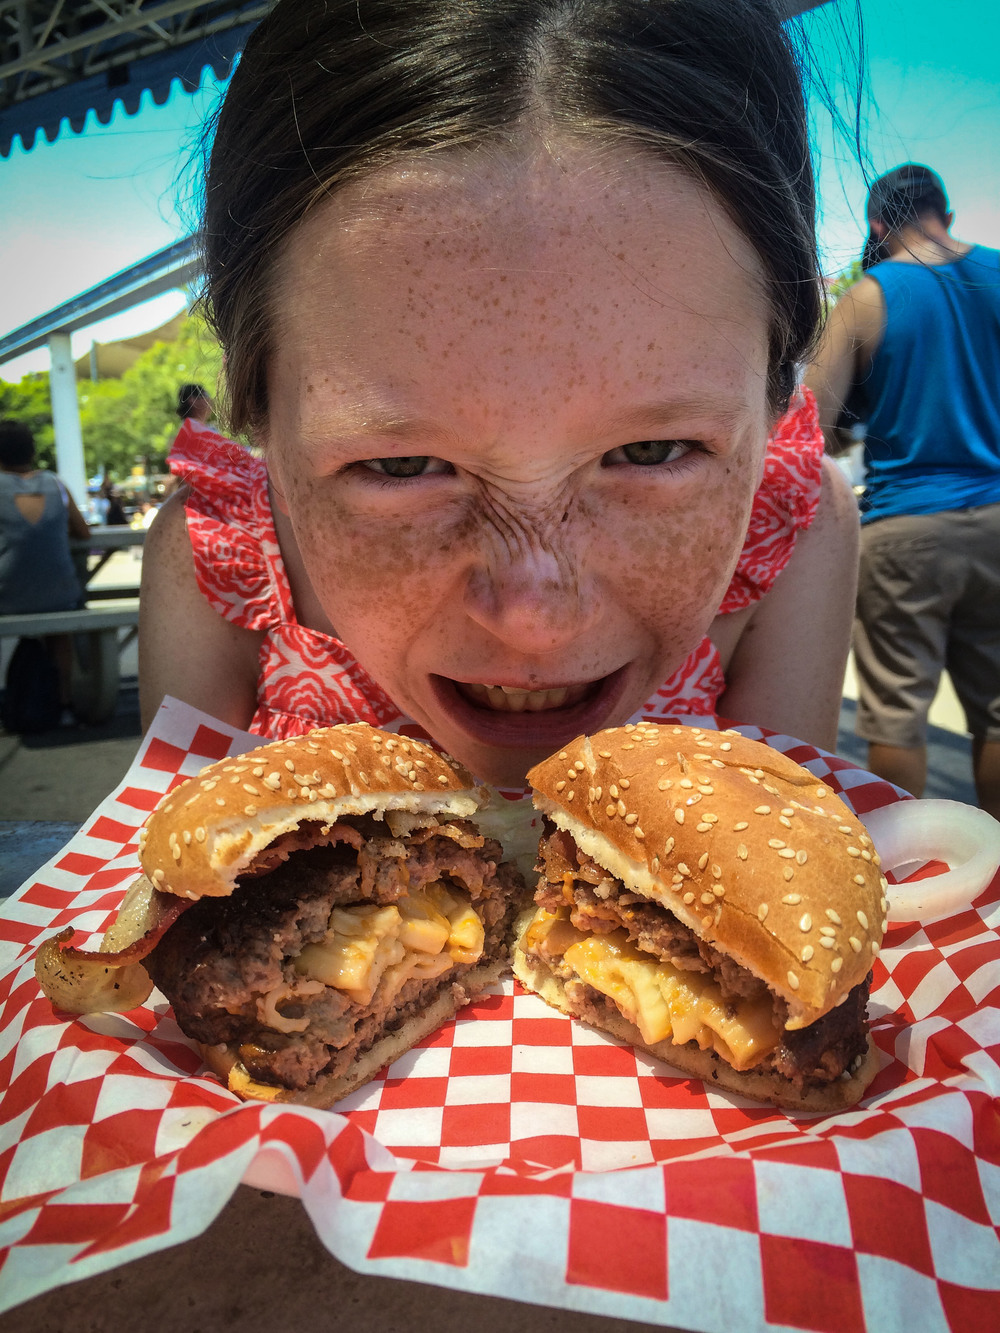 Don't mess with MK when she has a deep fried mac and cheese stuffed bacon cheeseburger!